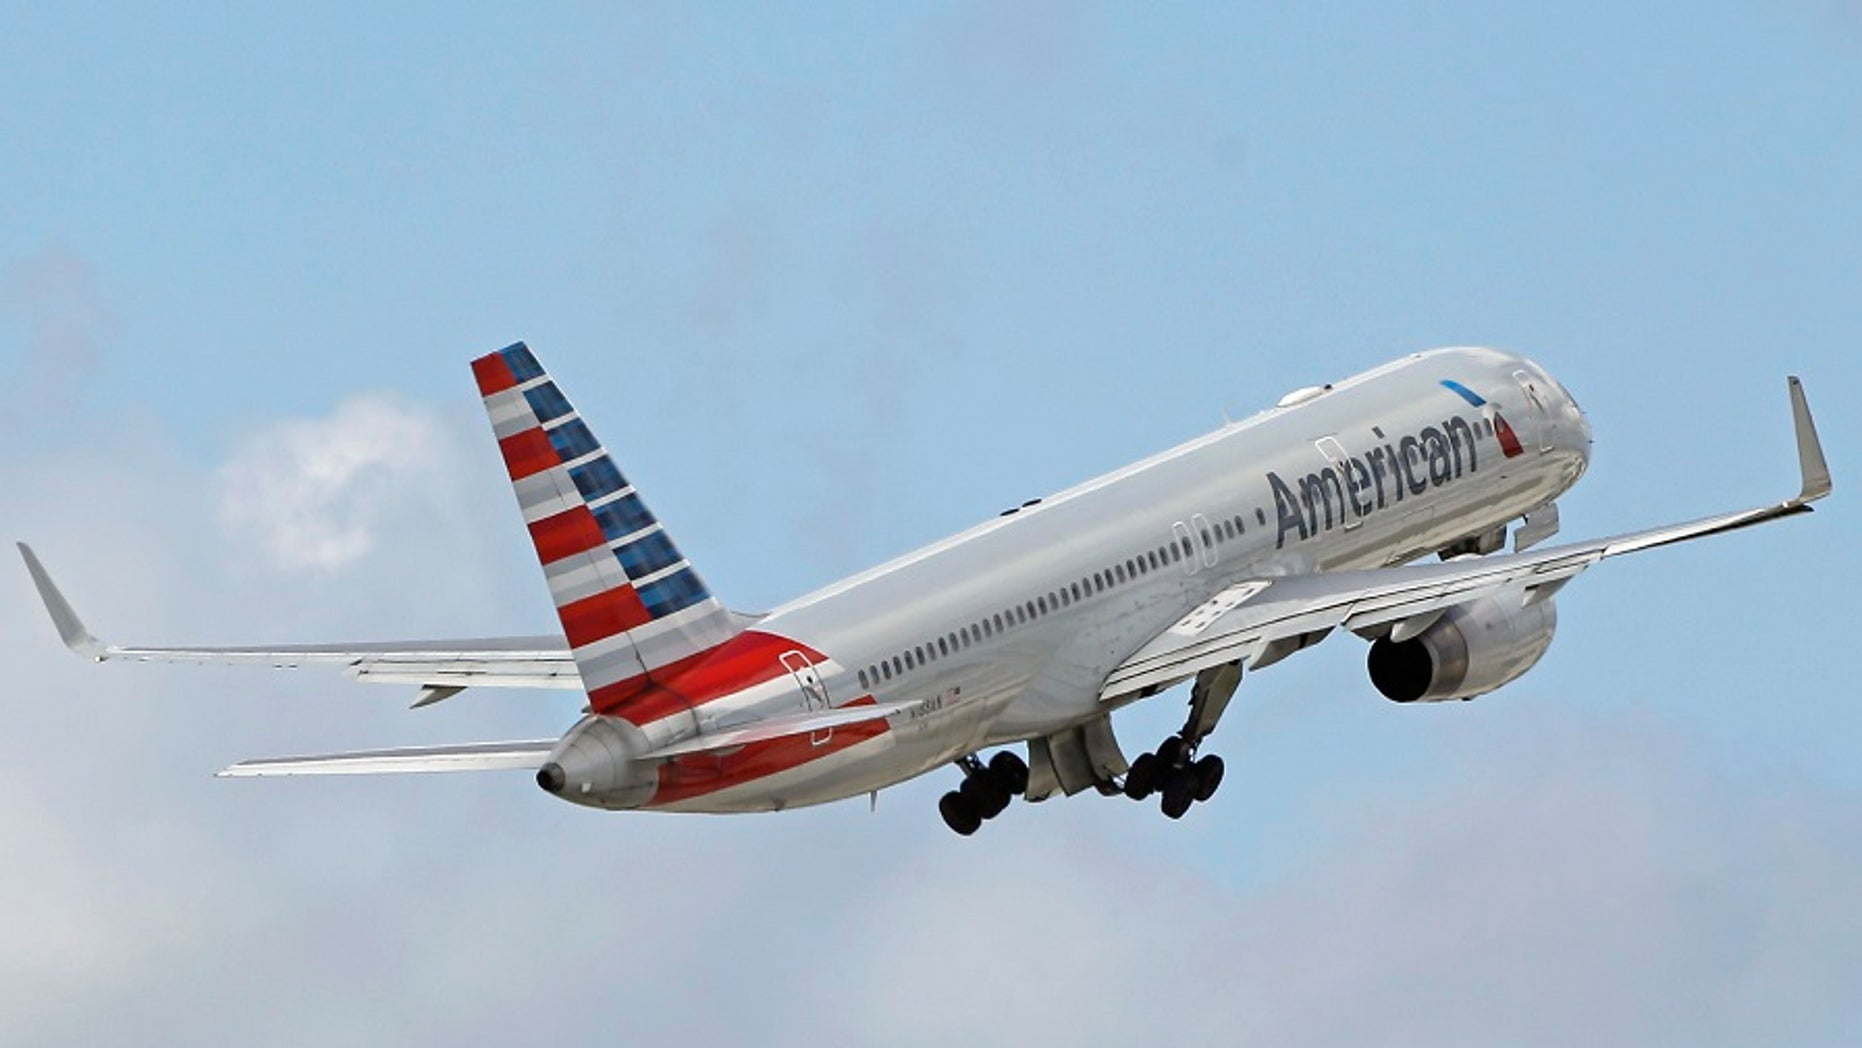 """An American Airlines flight from Los Angeles to Washington, D.C. was reportedly delayed to a """"urine smell"""" in the plane's cabin on Sunday, July 9, 2017."""